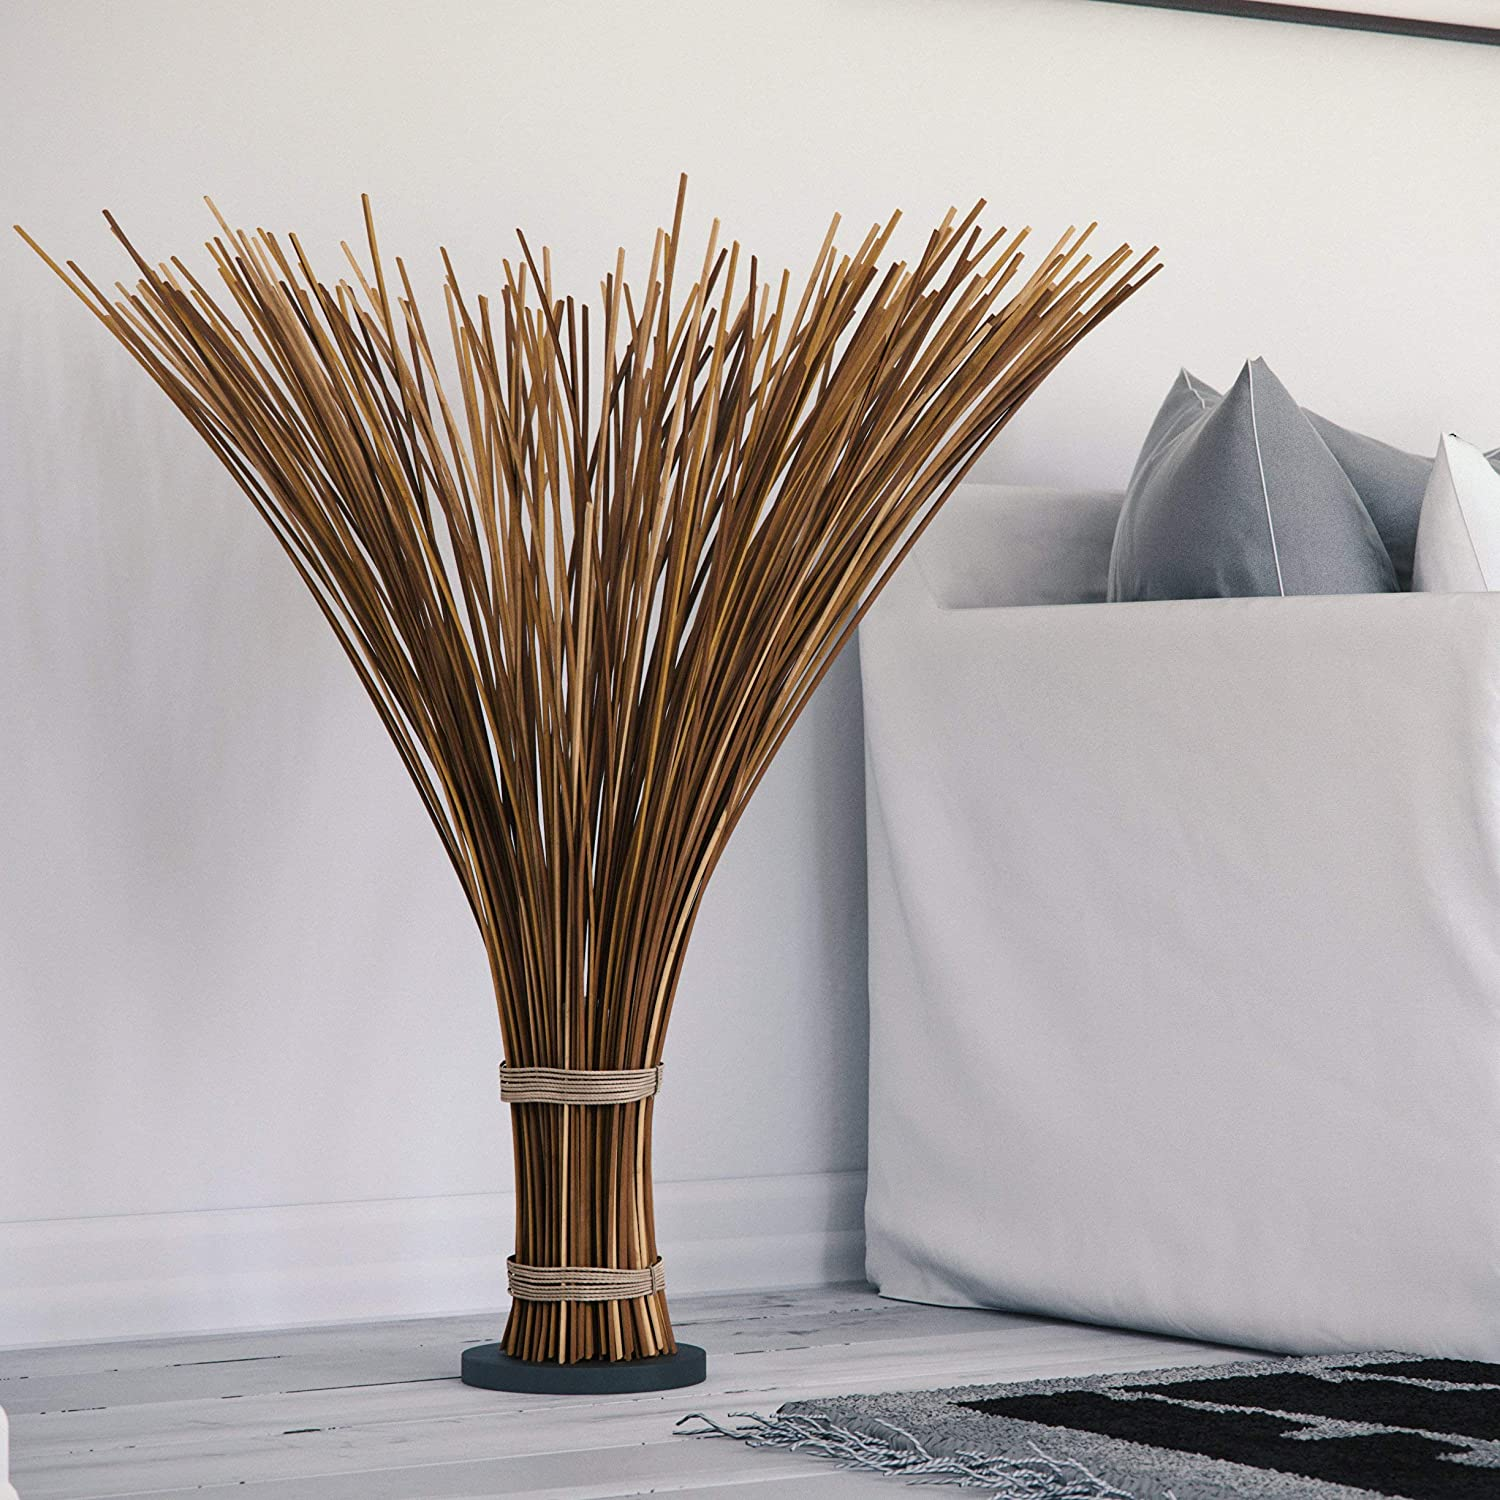 Floor Lamp for Living Room, Bedrooms Design Craft Coastal Natural Reed 46-inch Beach Decor